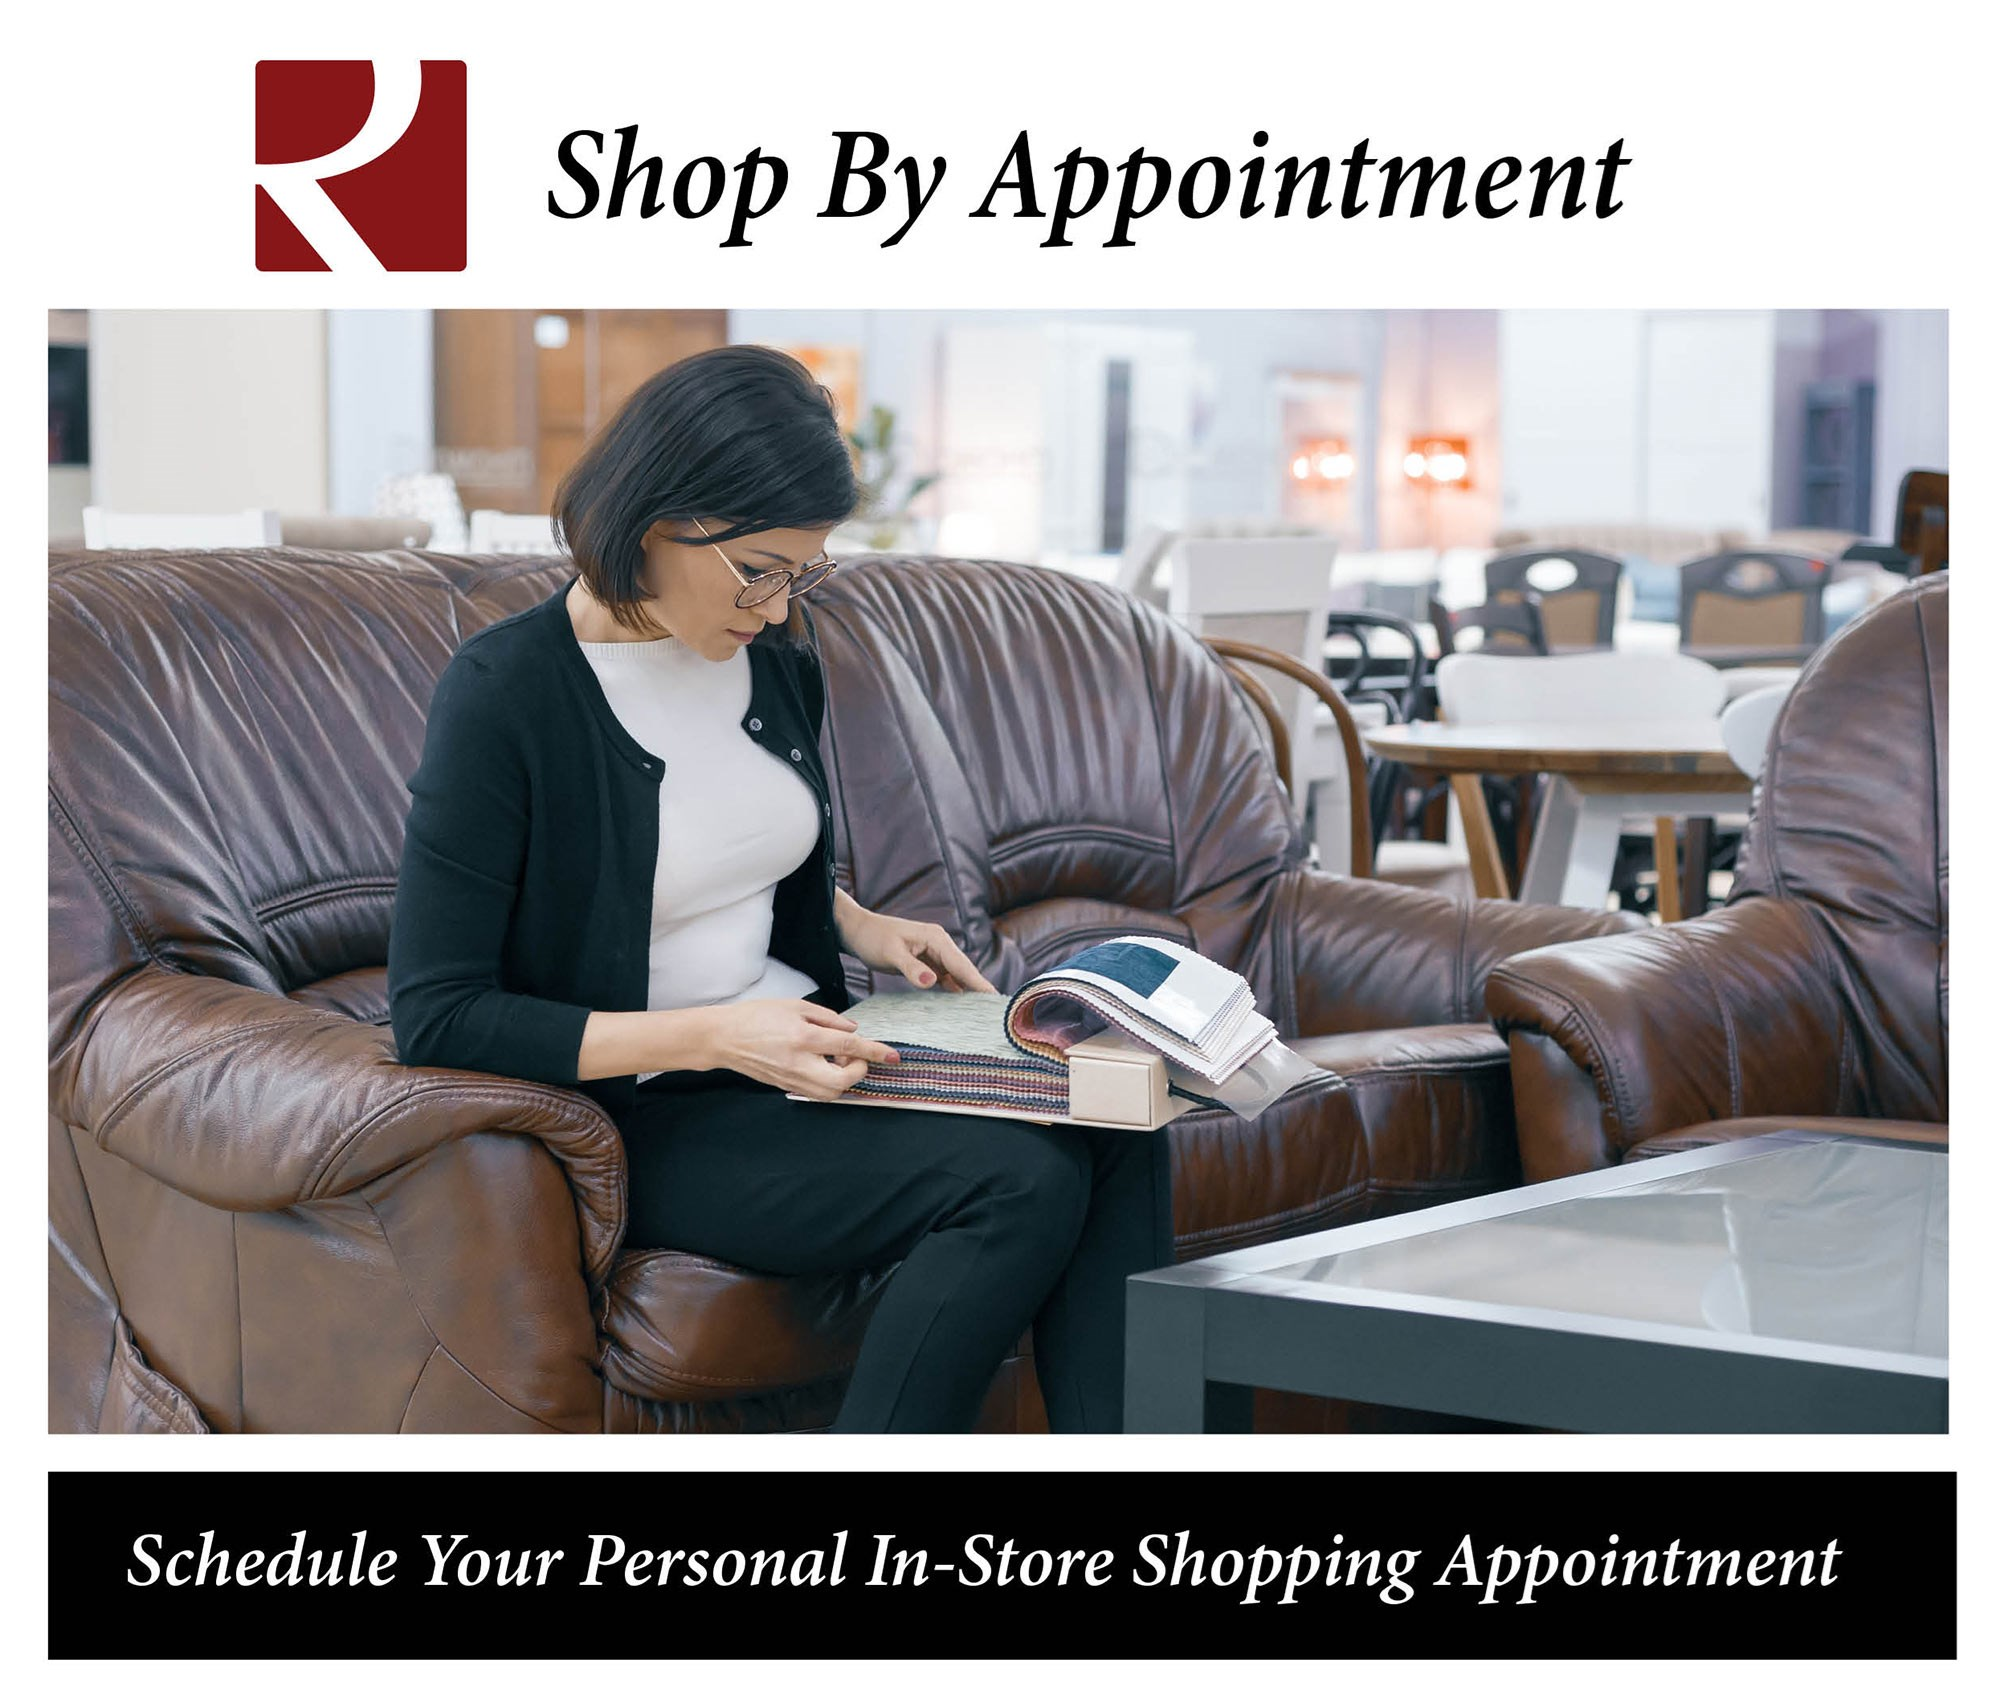 Schedule Your Personal In-Store Shopping Appointment